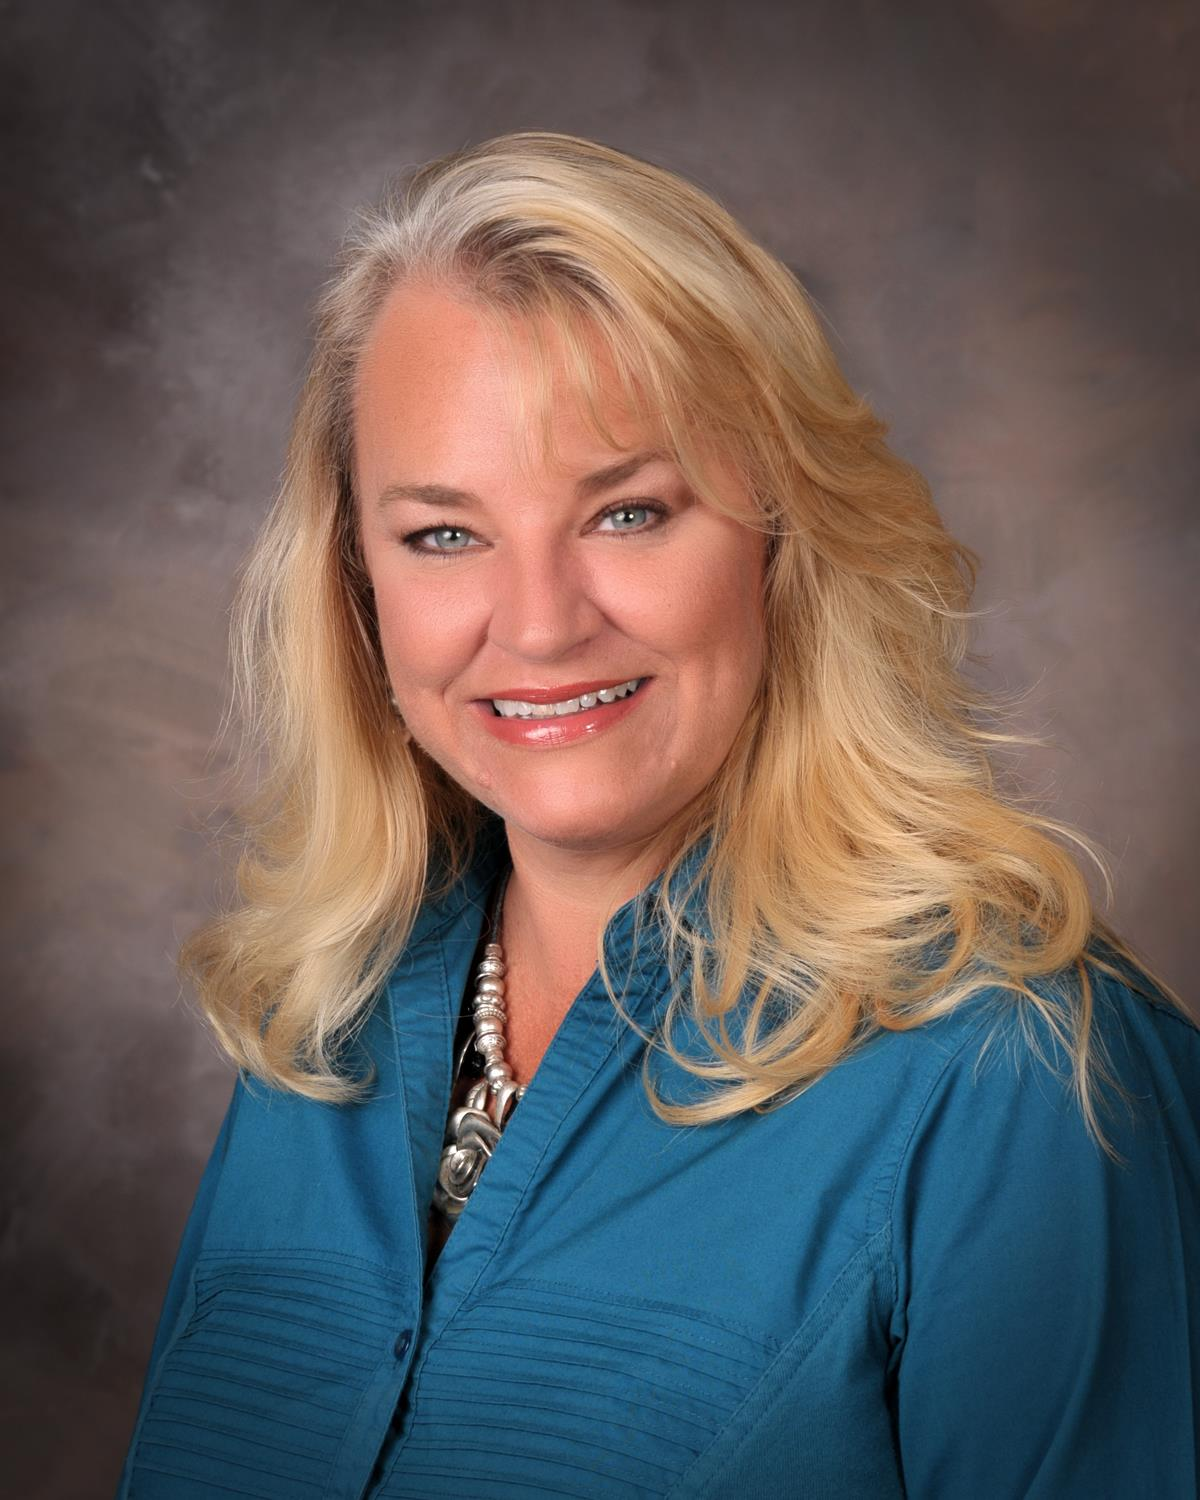 Holly Hembree The Prosper Team Realty ExecutivesTop buyer real estate agent Realtor